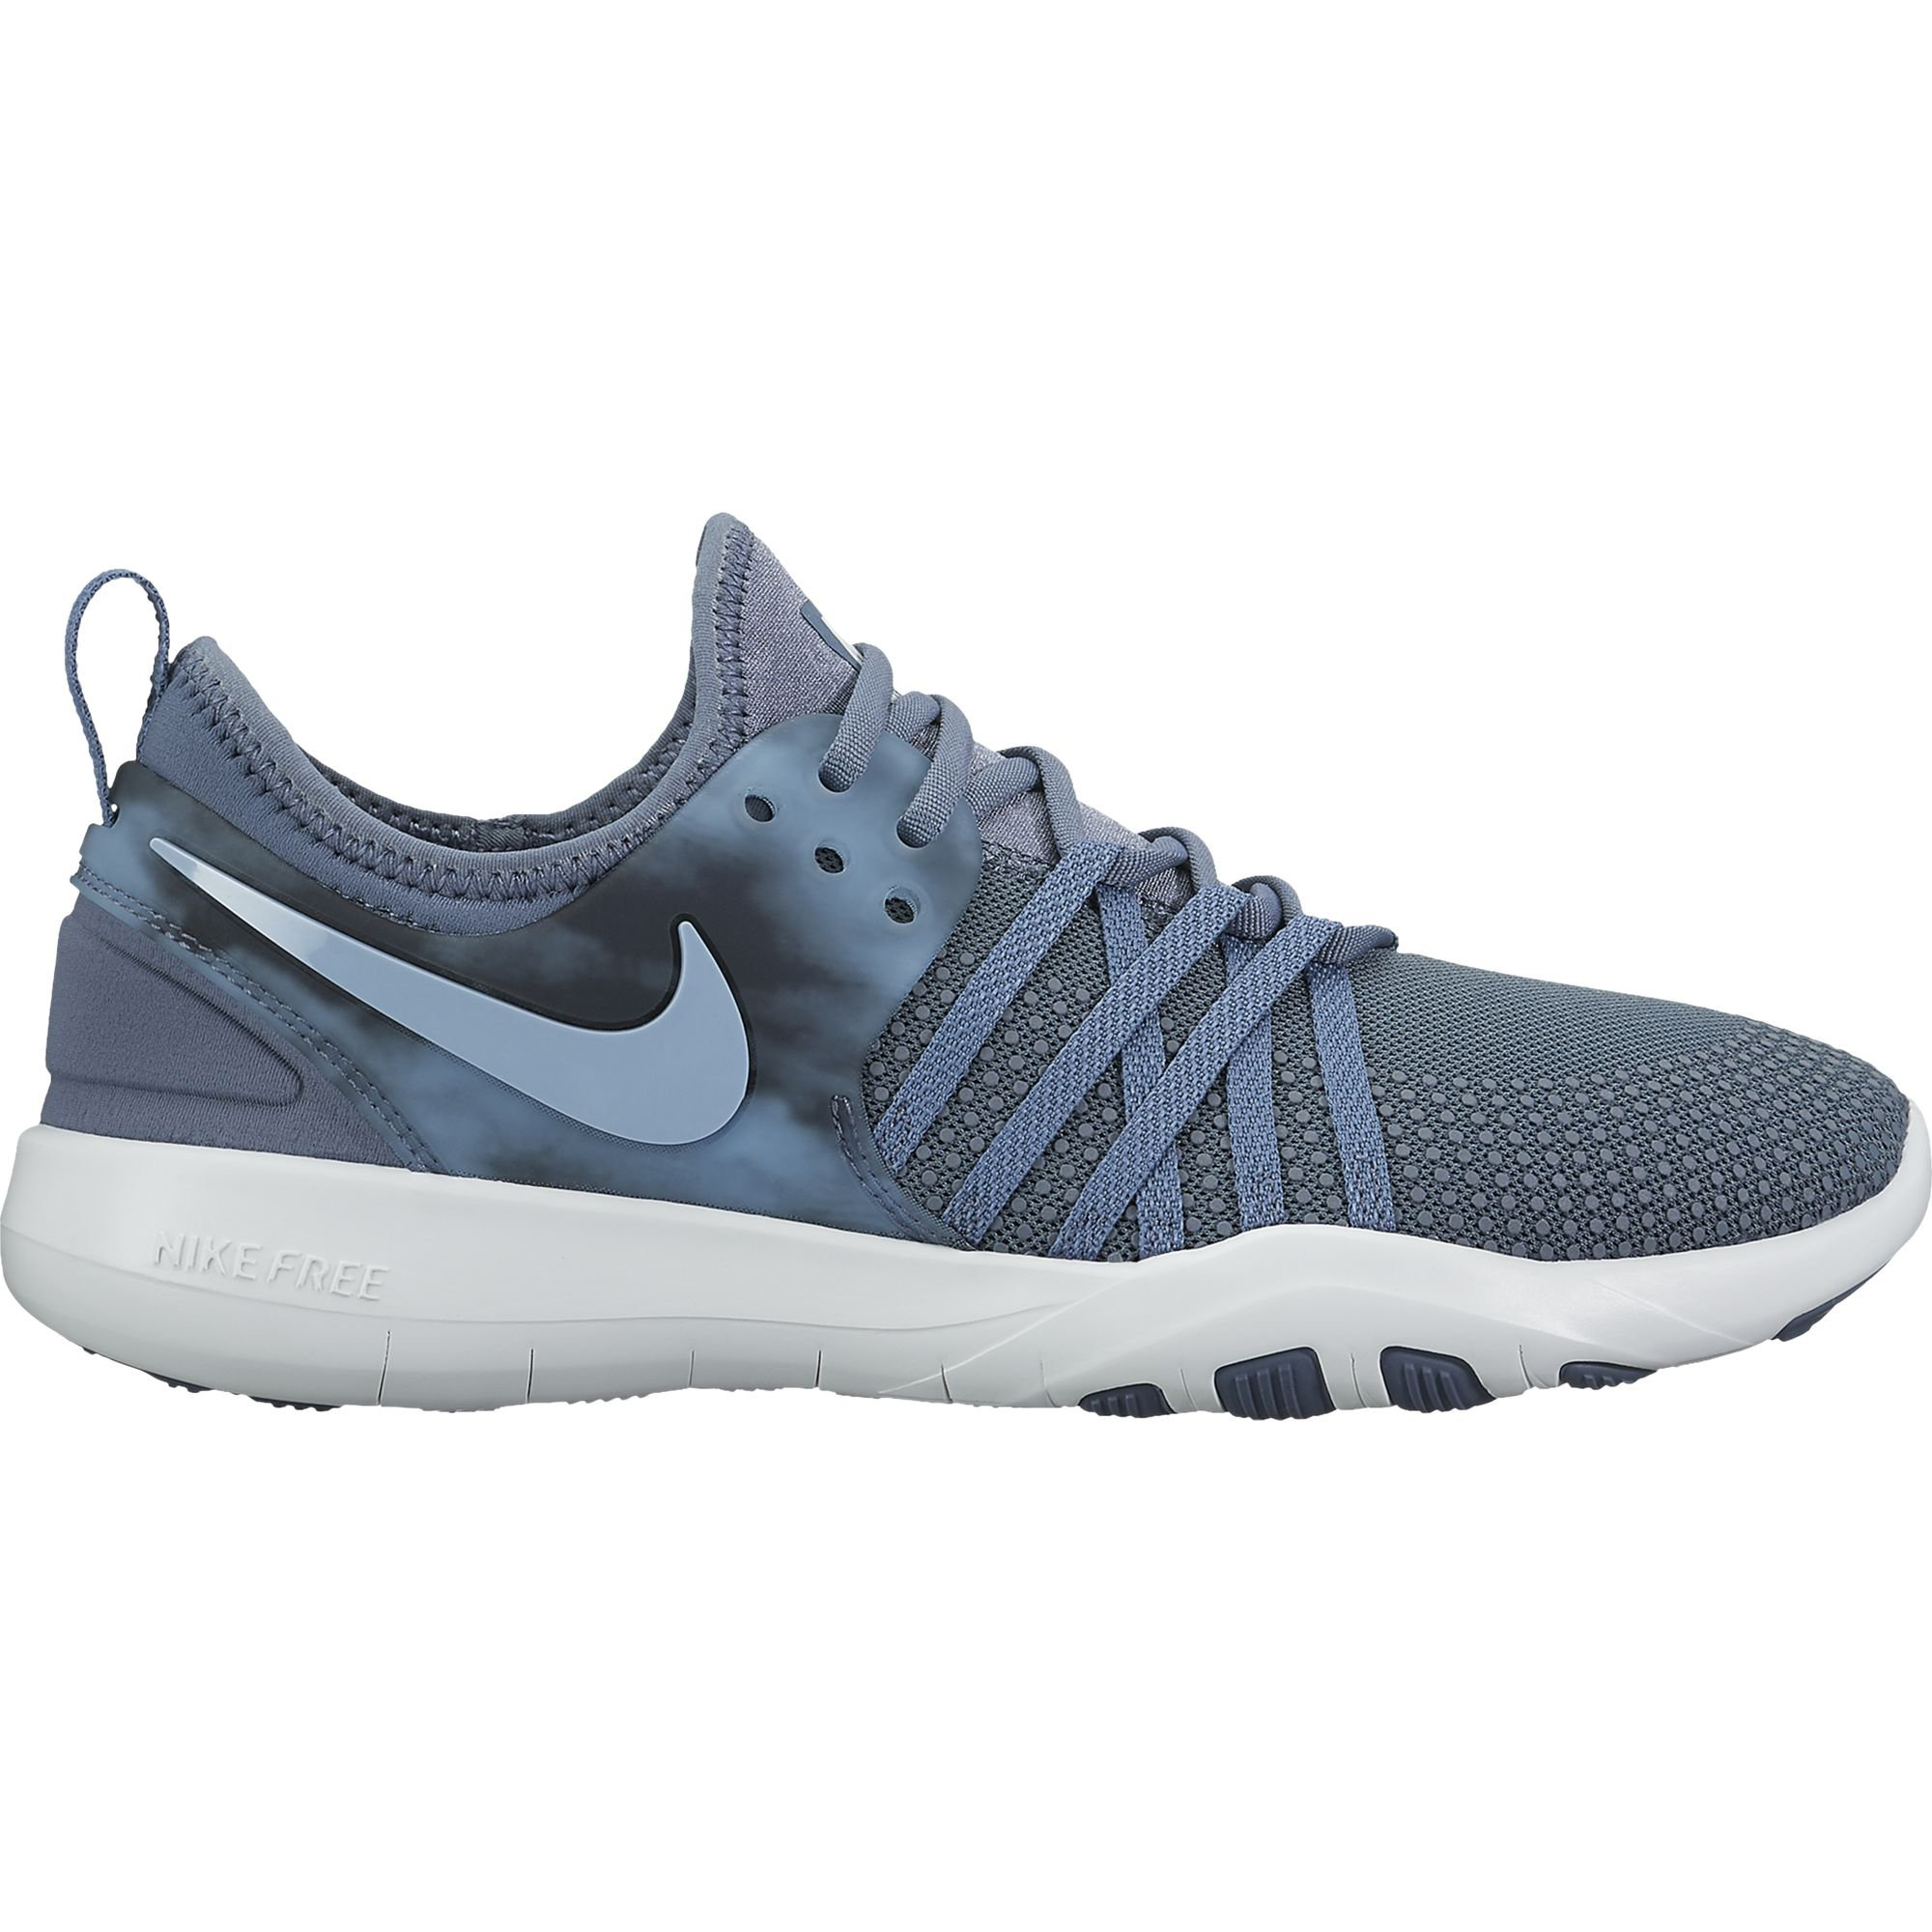 7325ca6cb546 NIKE Free Tr 7 Amp Size 7.5 Womens Cross Training Armory Blue Armory  Blue-Thunder Blue Shoes